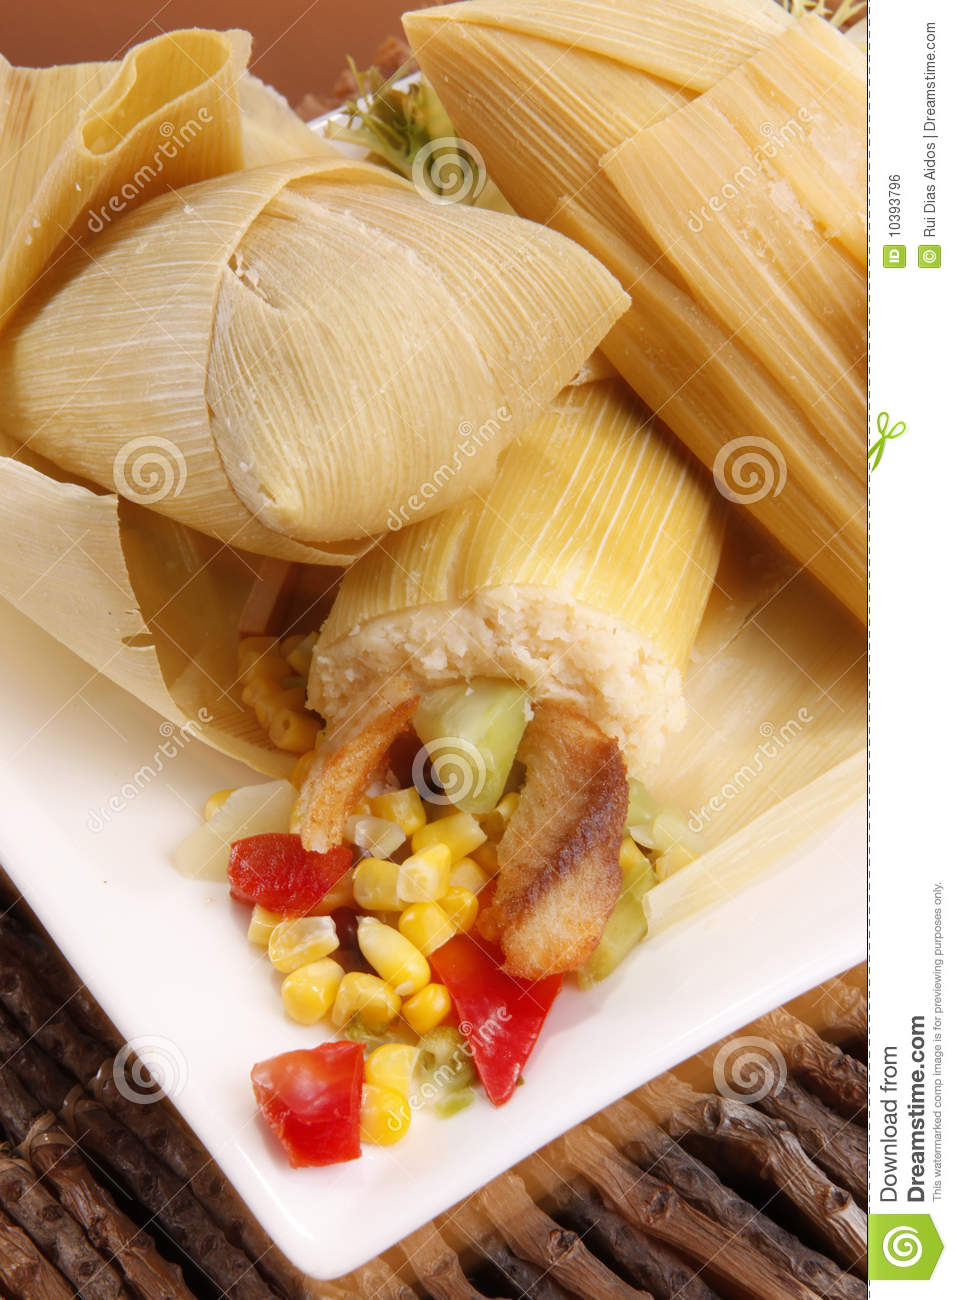 How to Start a Home-Based Tamale Business